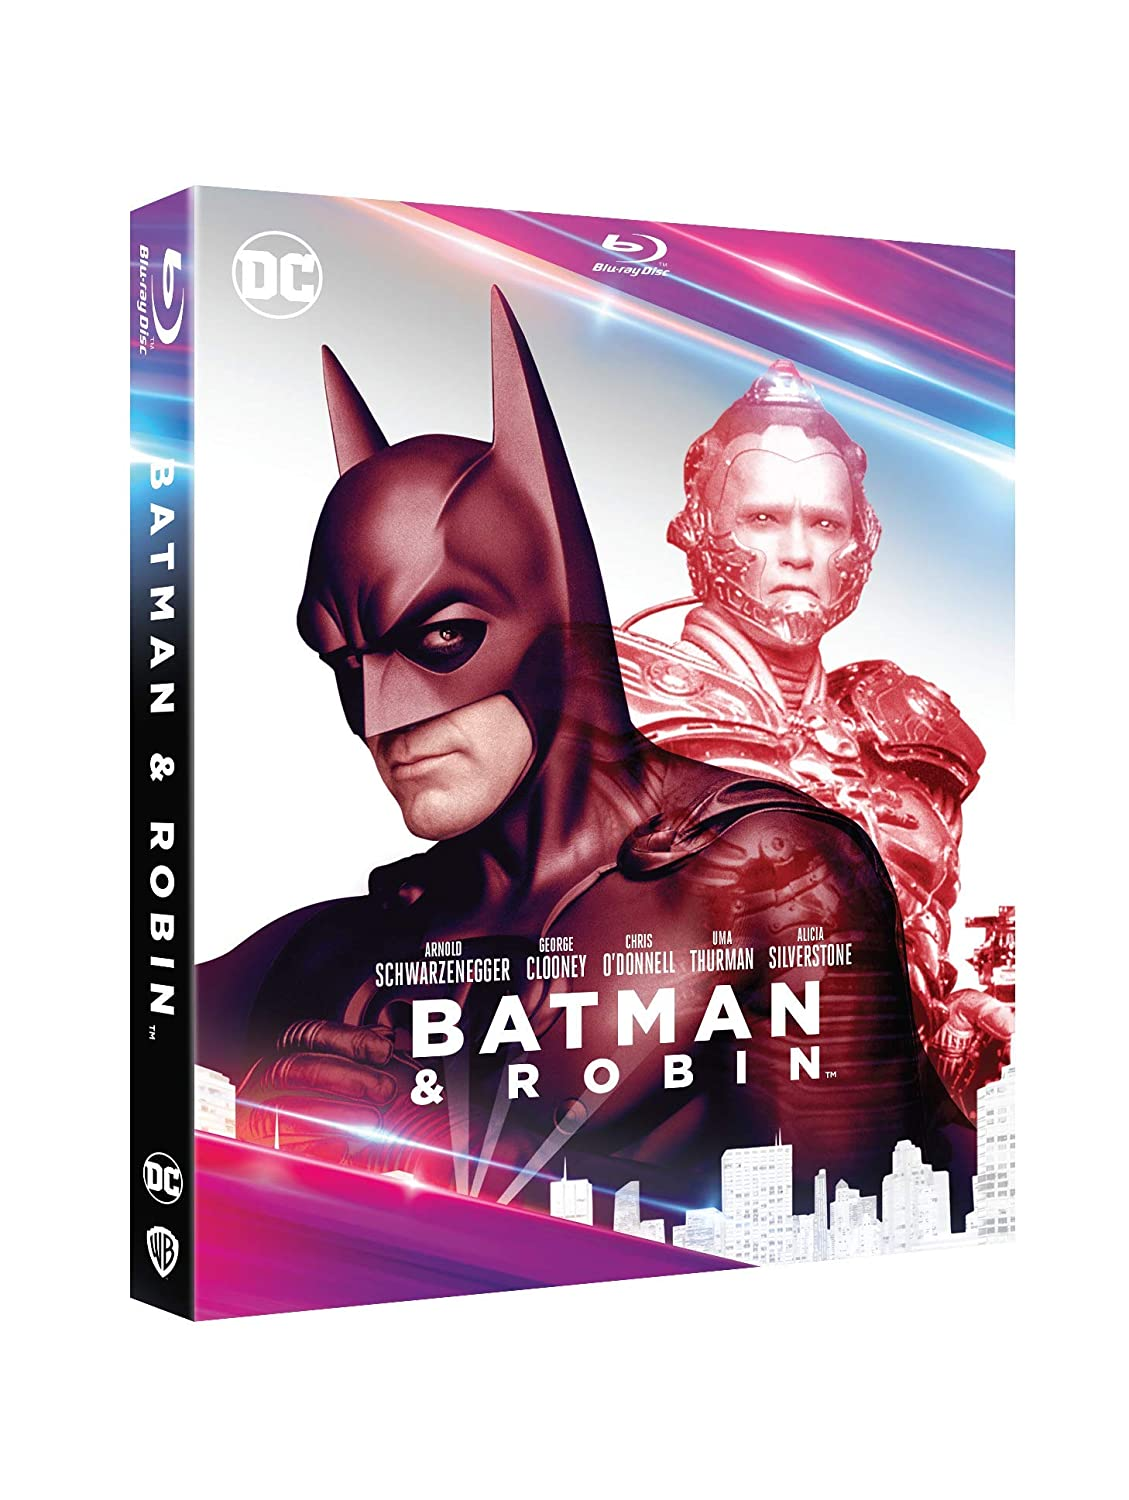 BATMAN & ROBIN (DC COMICS COLLECTION) - BLU RAY